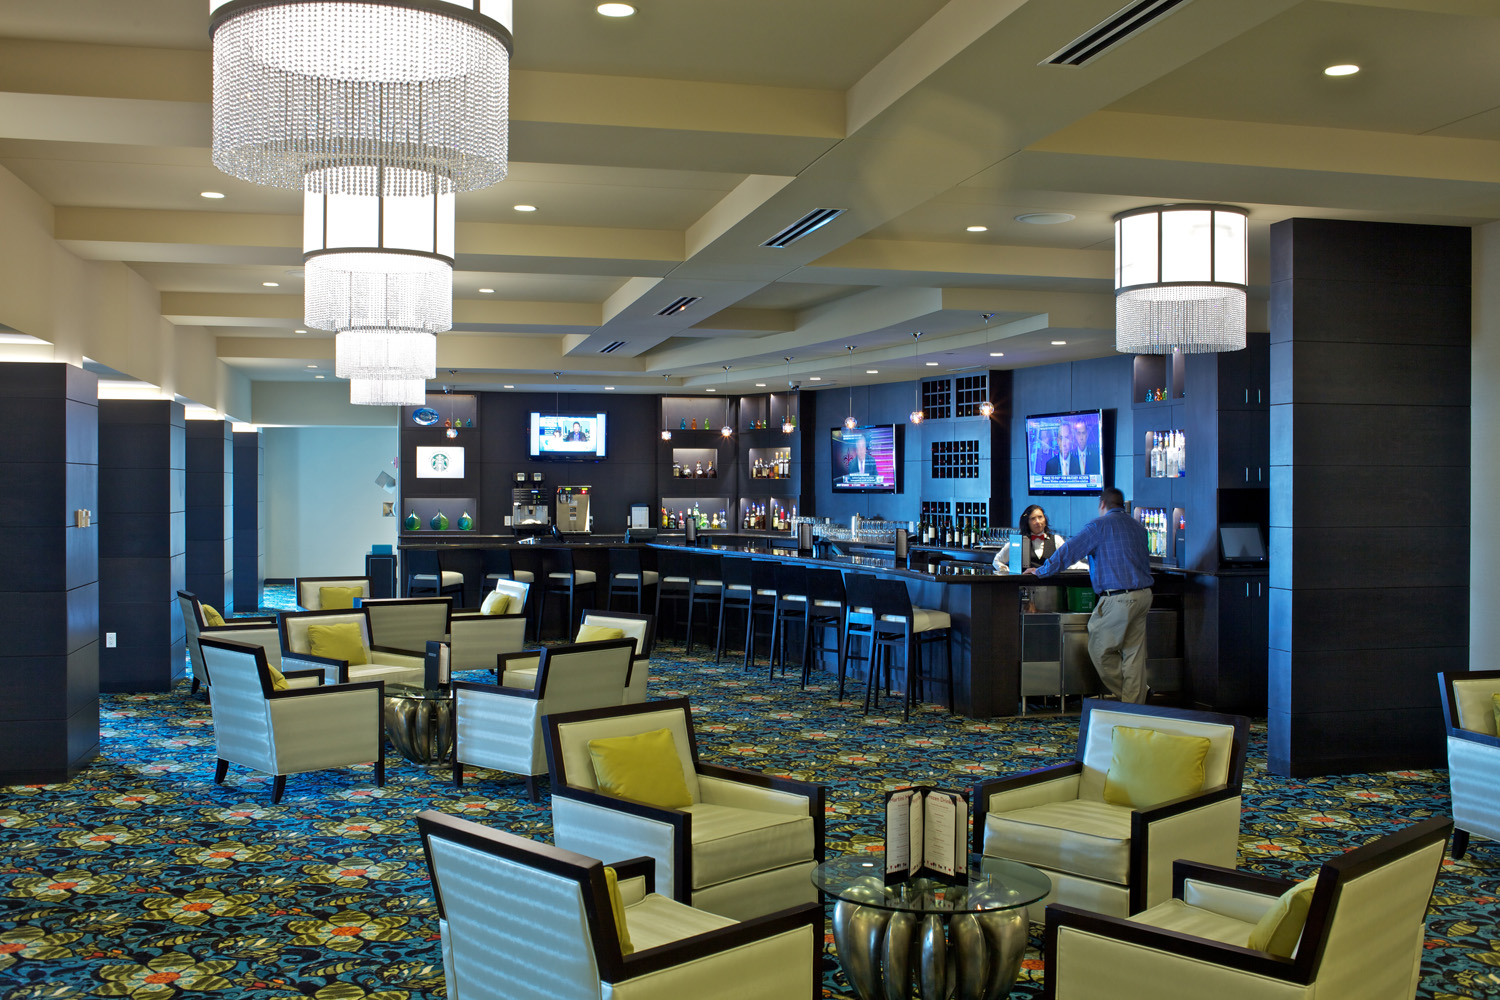 Seating area in the Prairie Meadows Resort and Casino in Altoona, IA